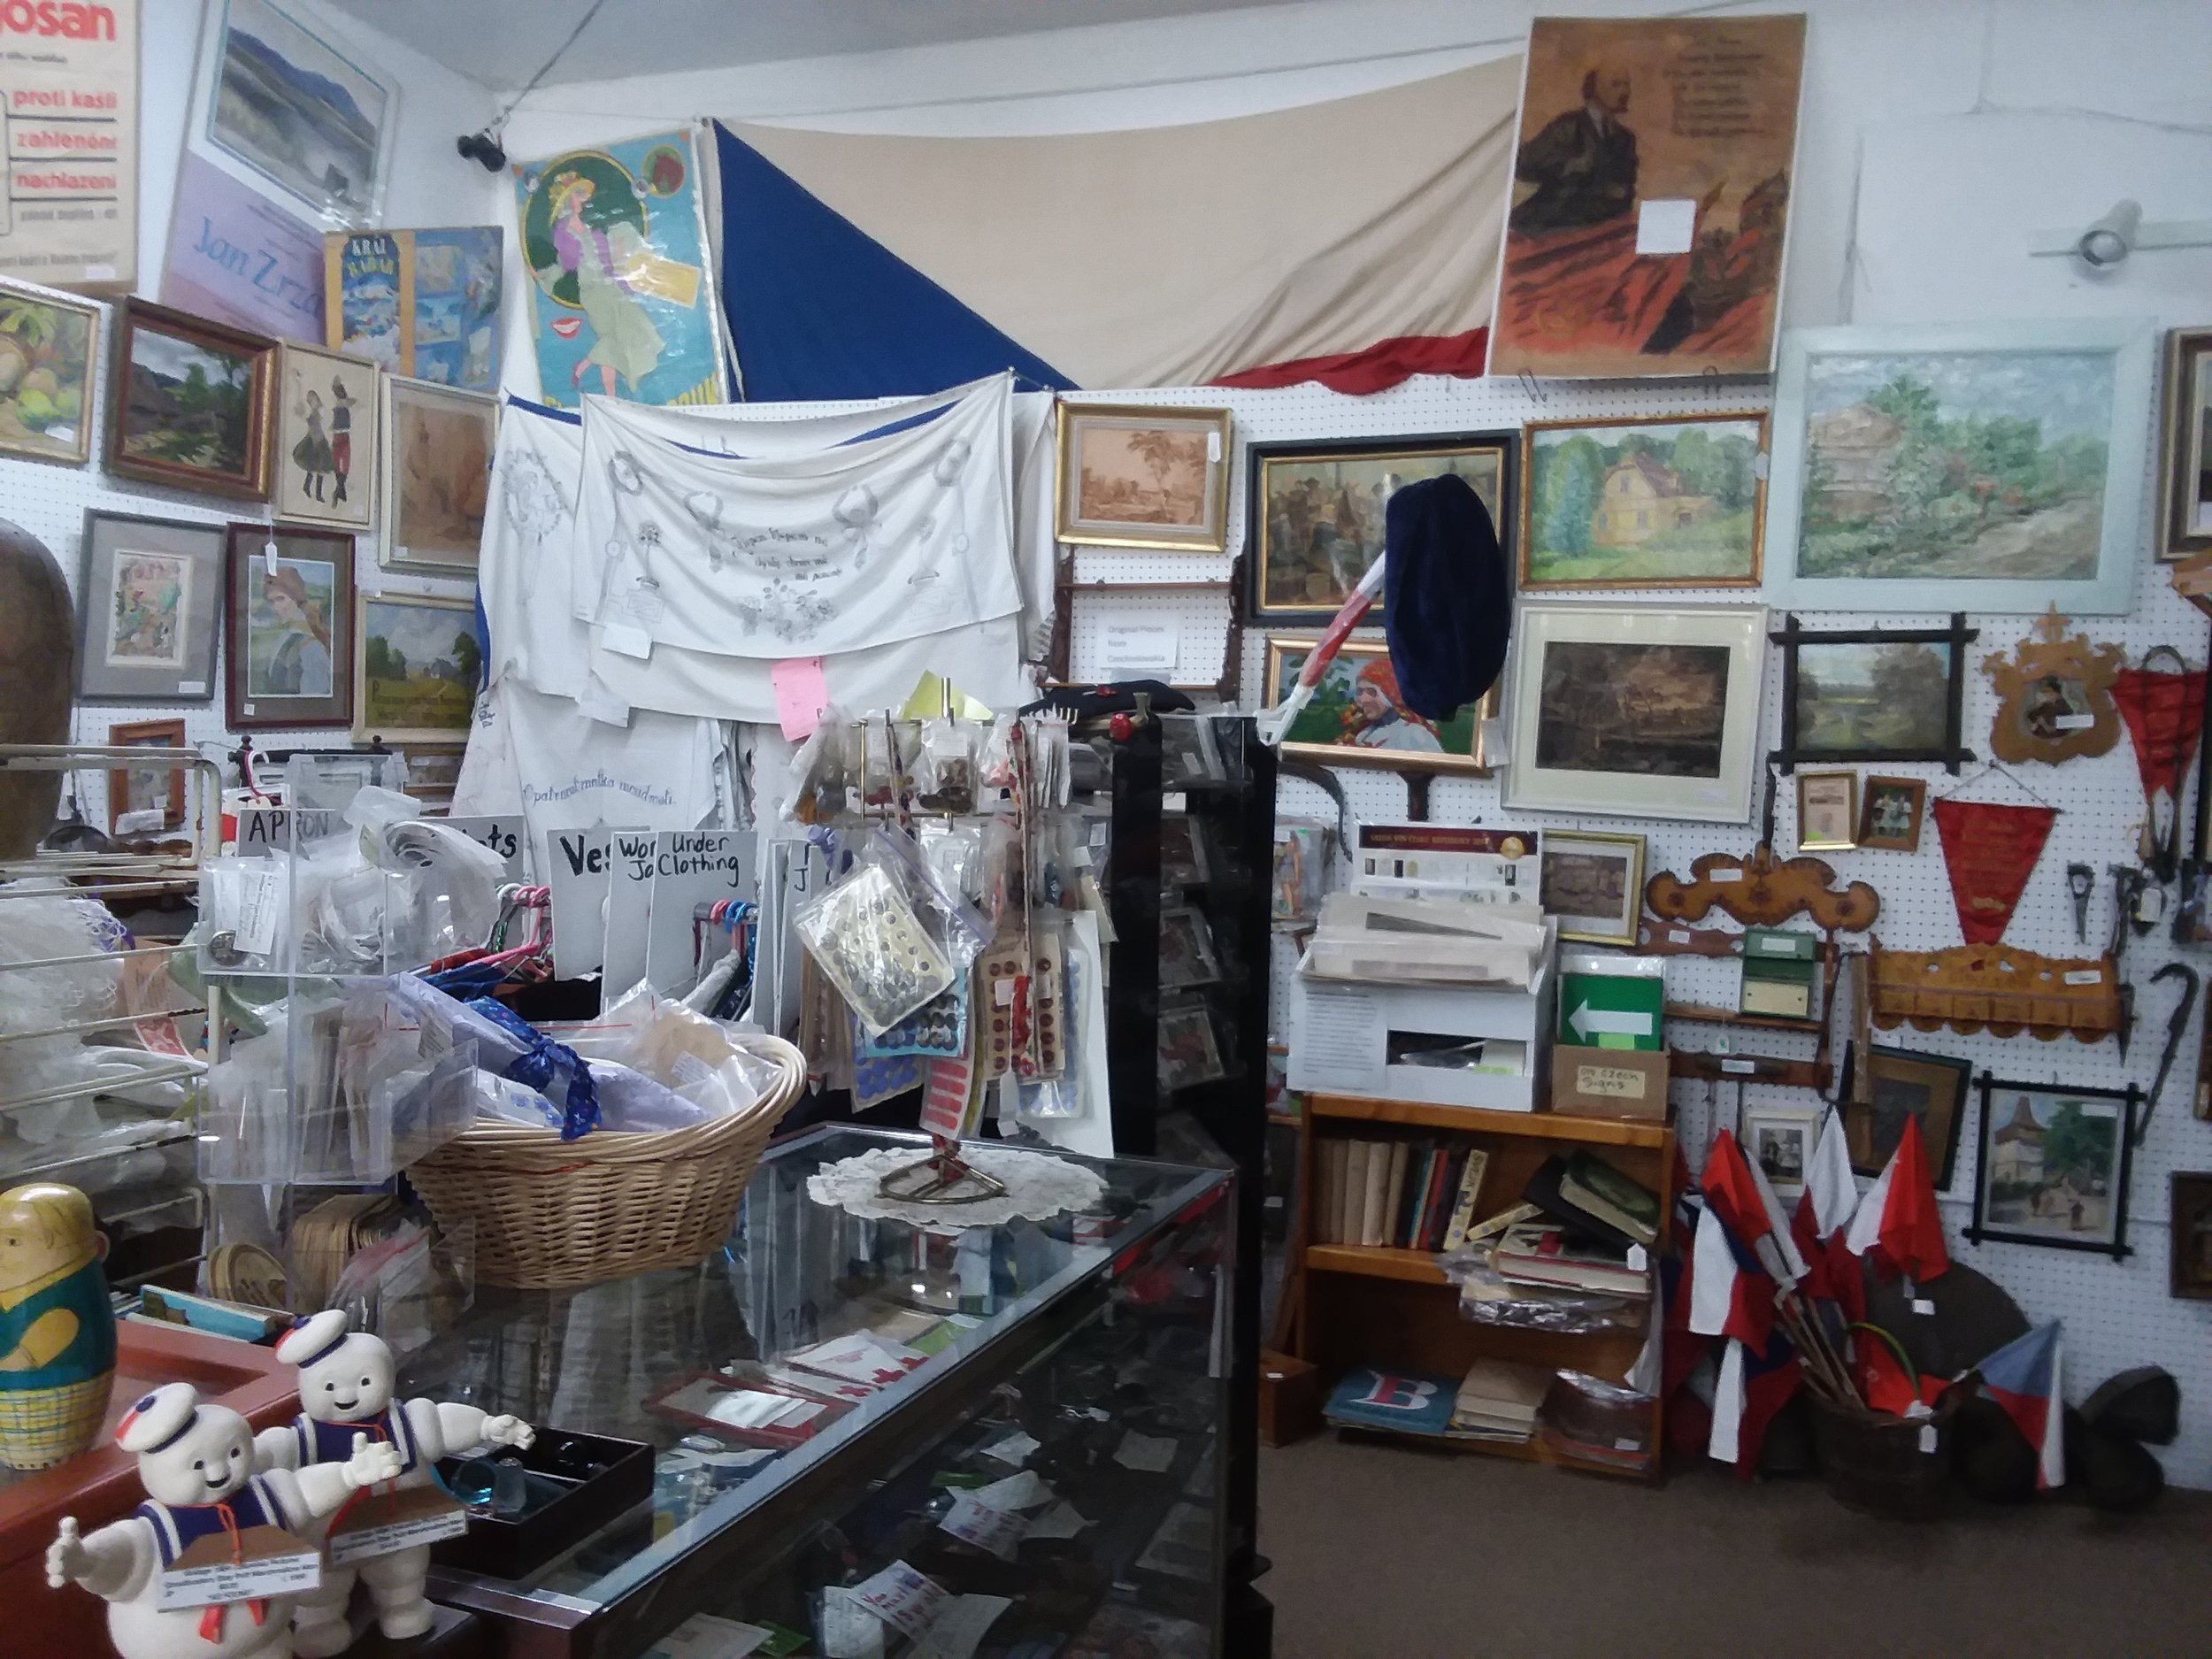 - We own the mall and carry the largest selectioon of Czech and Slovak antiques available anywhere in the U.S. From the former Czechoslovakia we have paintings, primitives, glass and pottery, beer lasses and tablecloths, Folk costumes (kroj), buttons and trim and hundreds of wonderful pieces of folk art. In addition, we have a military corner for you military collectors.